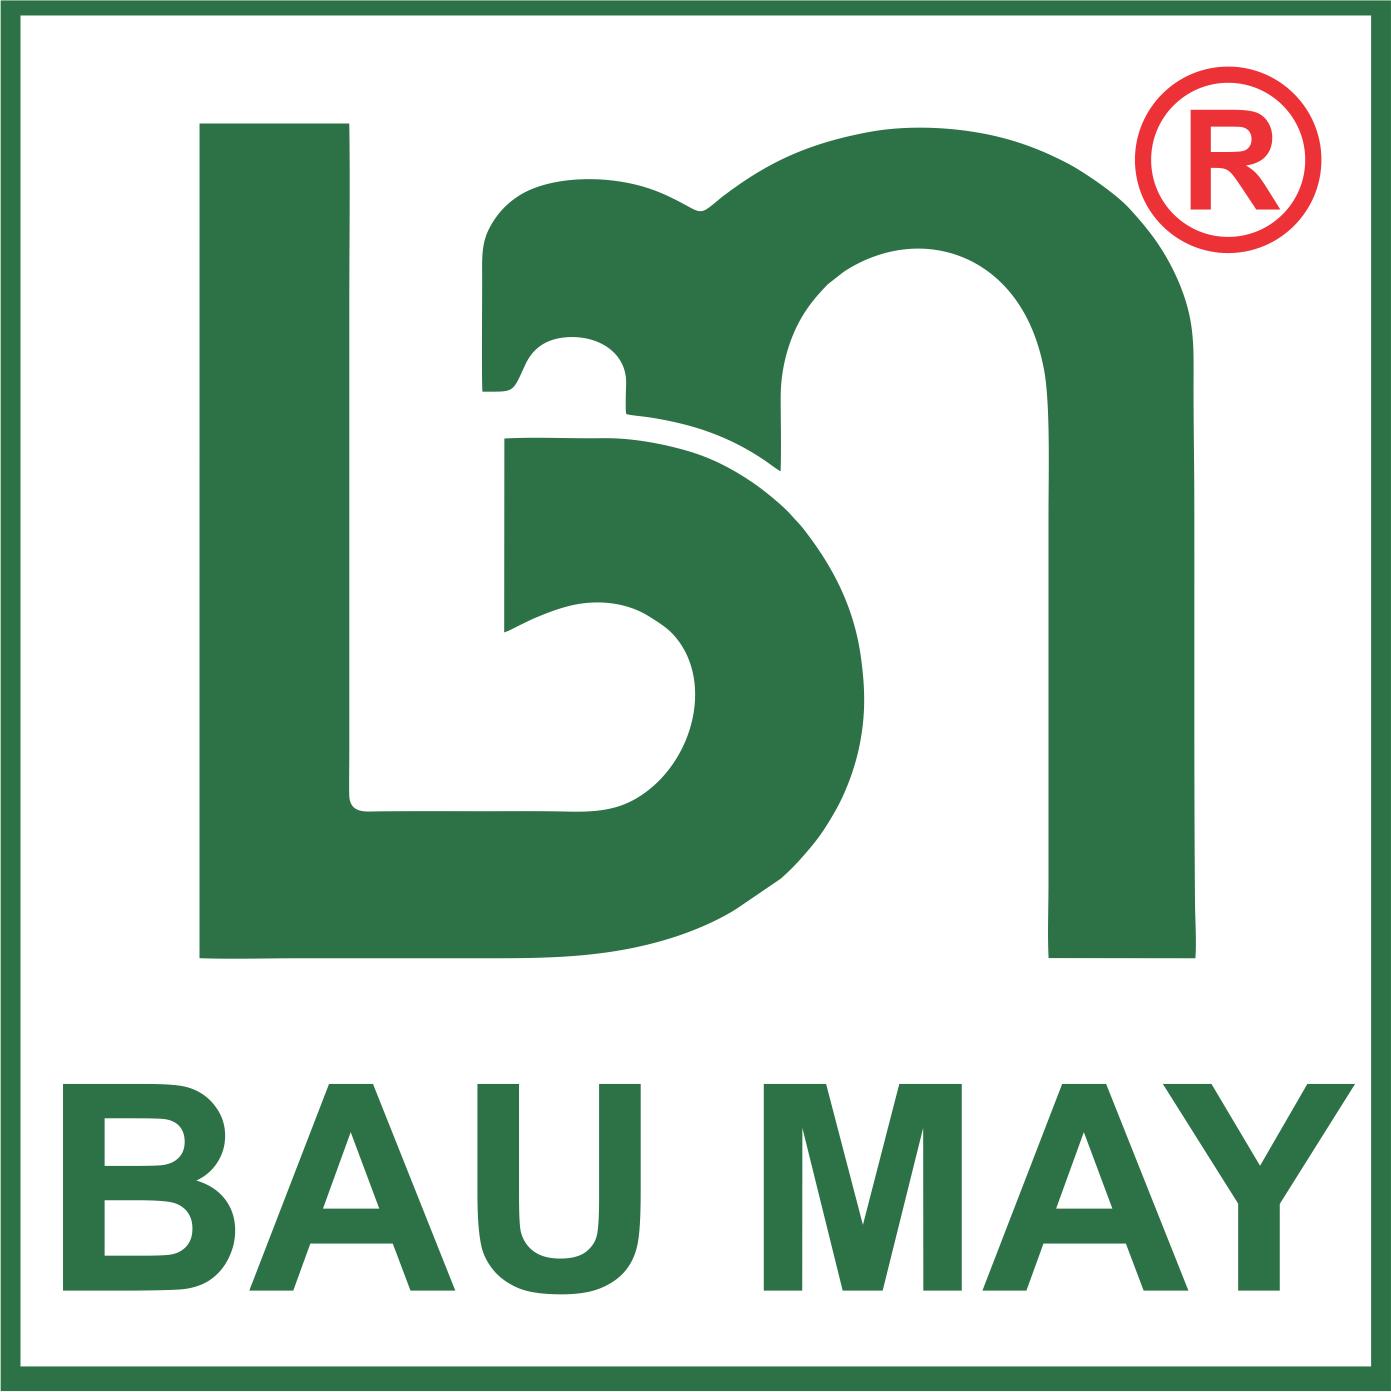 BAU MAY TRAVEL IN VUNG TAU AND DA NANG